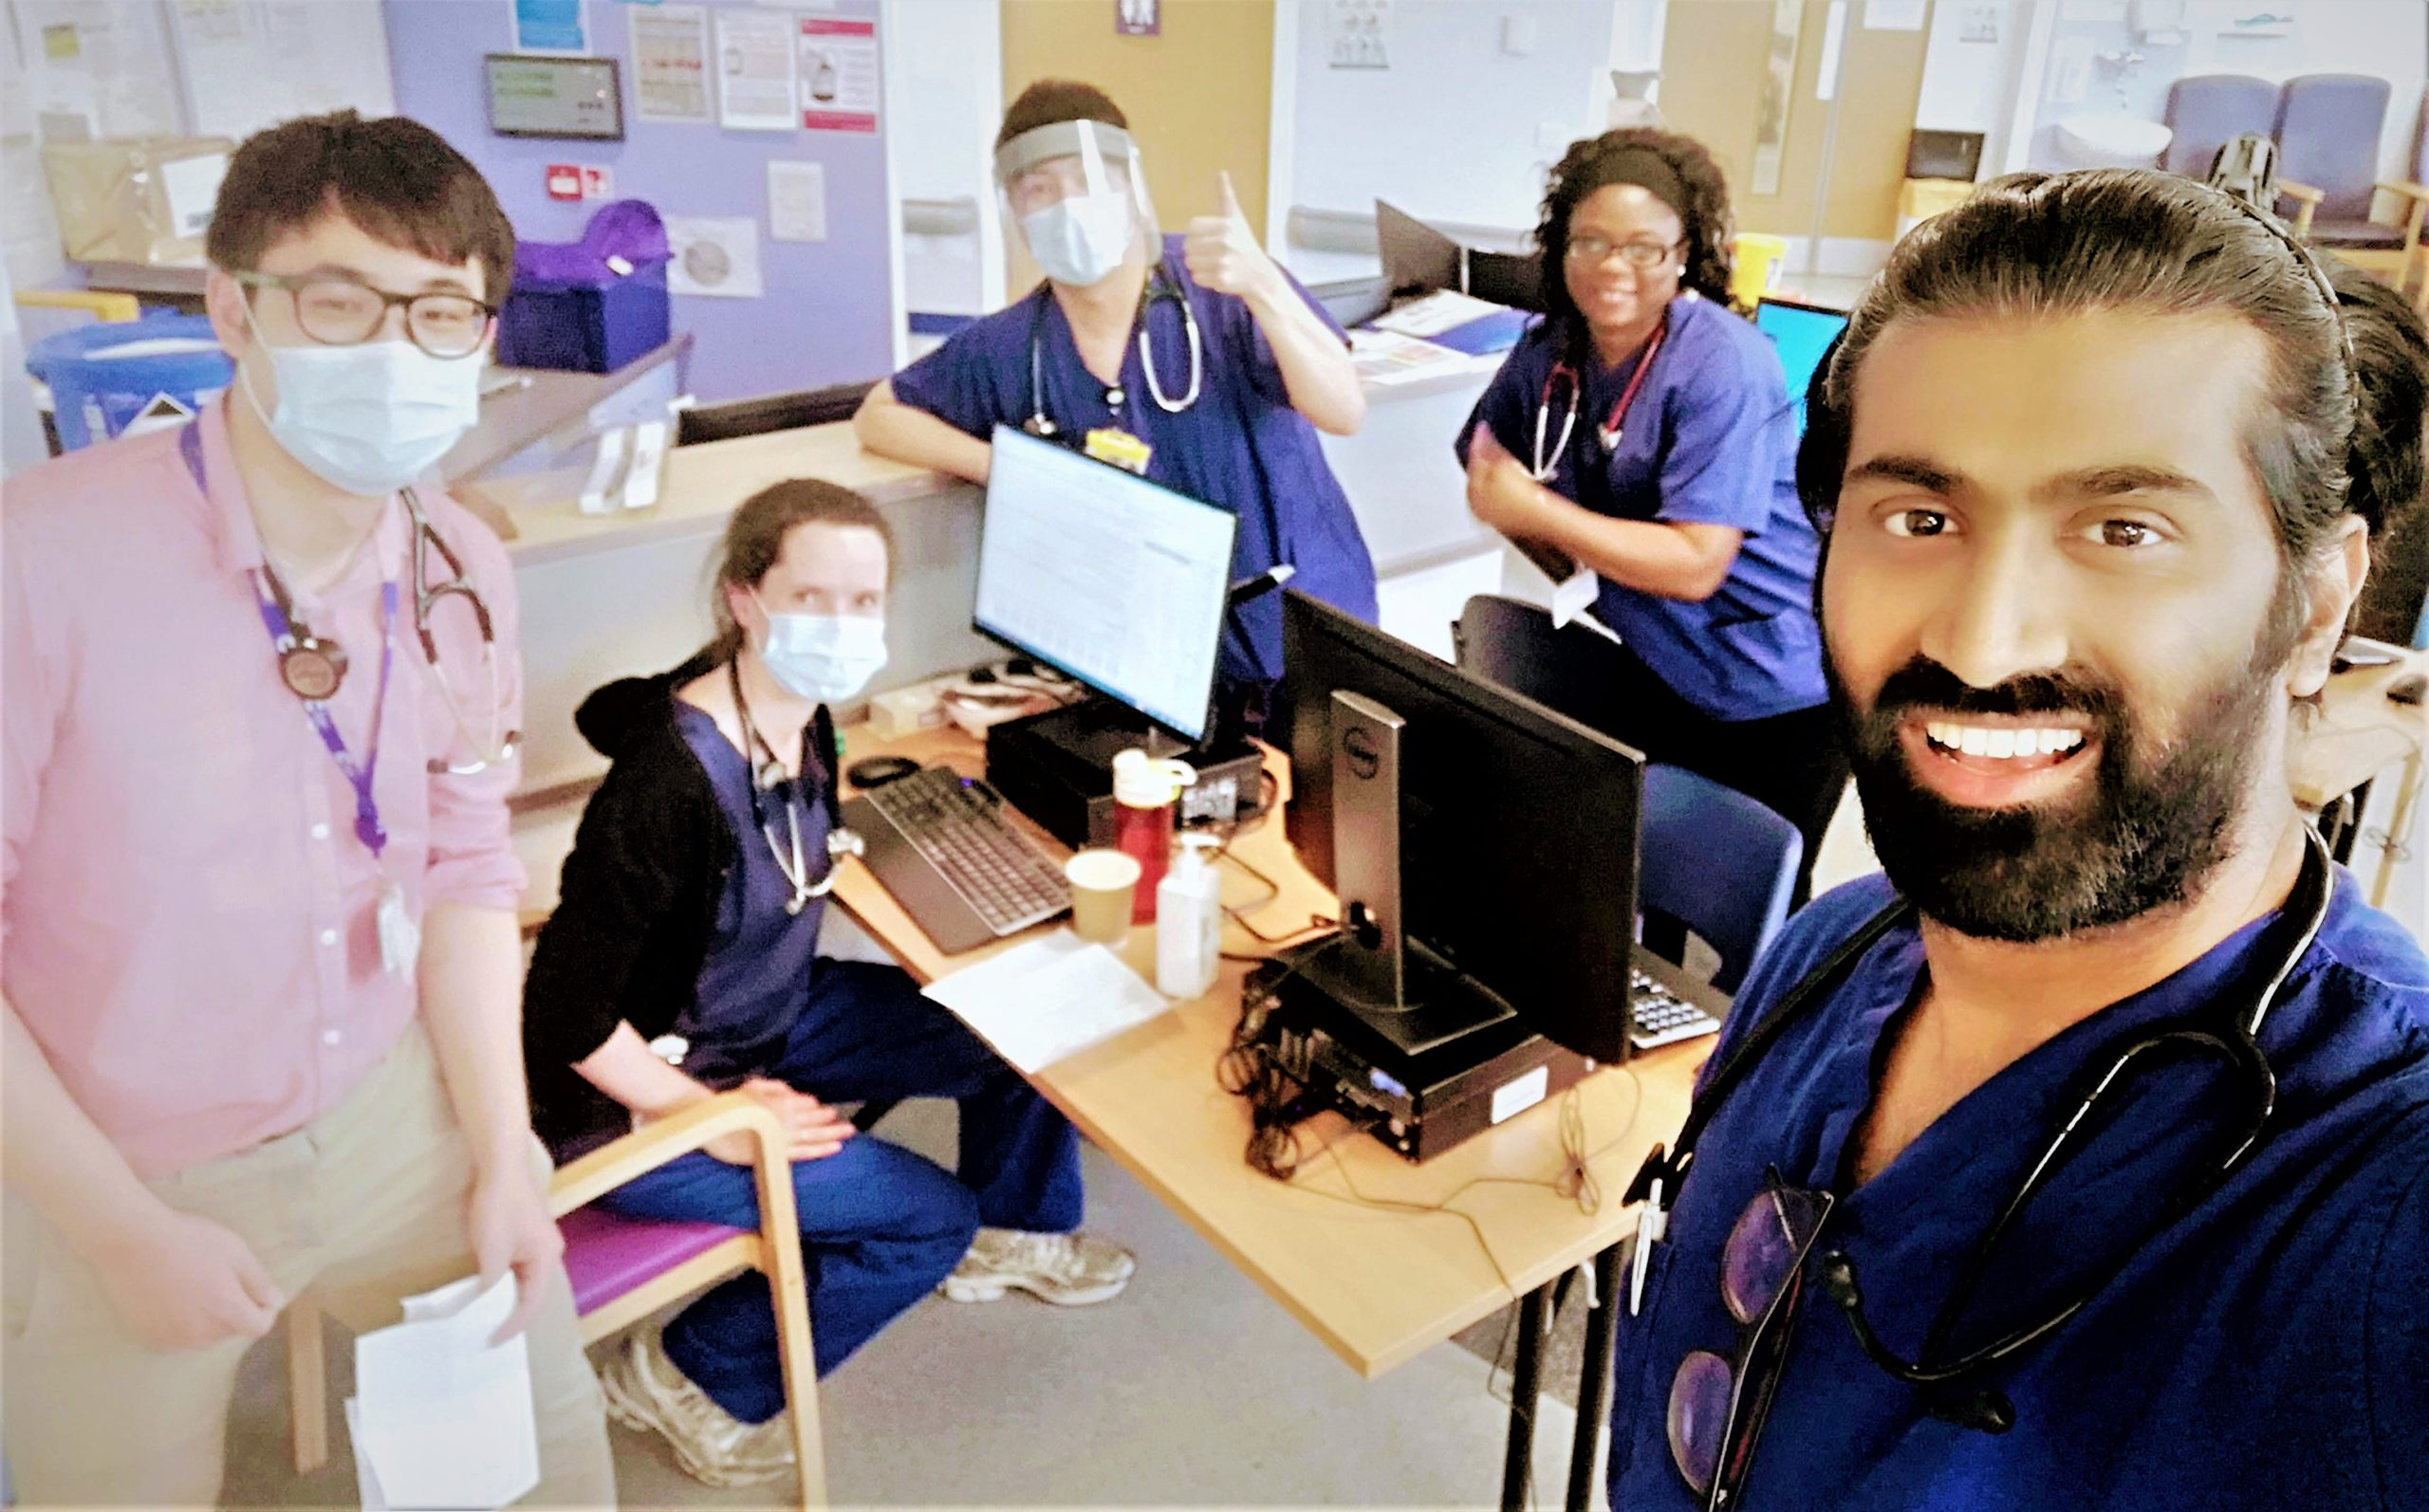 healthcare team working during covid-19